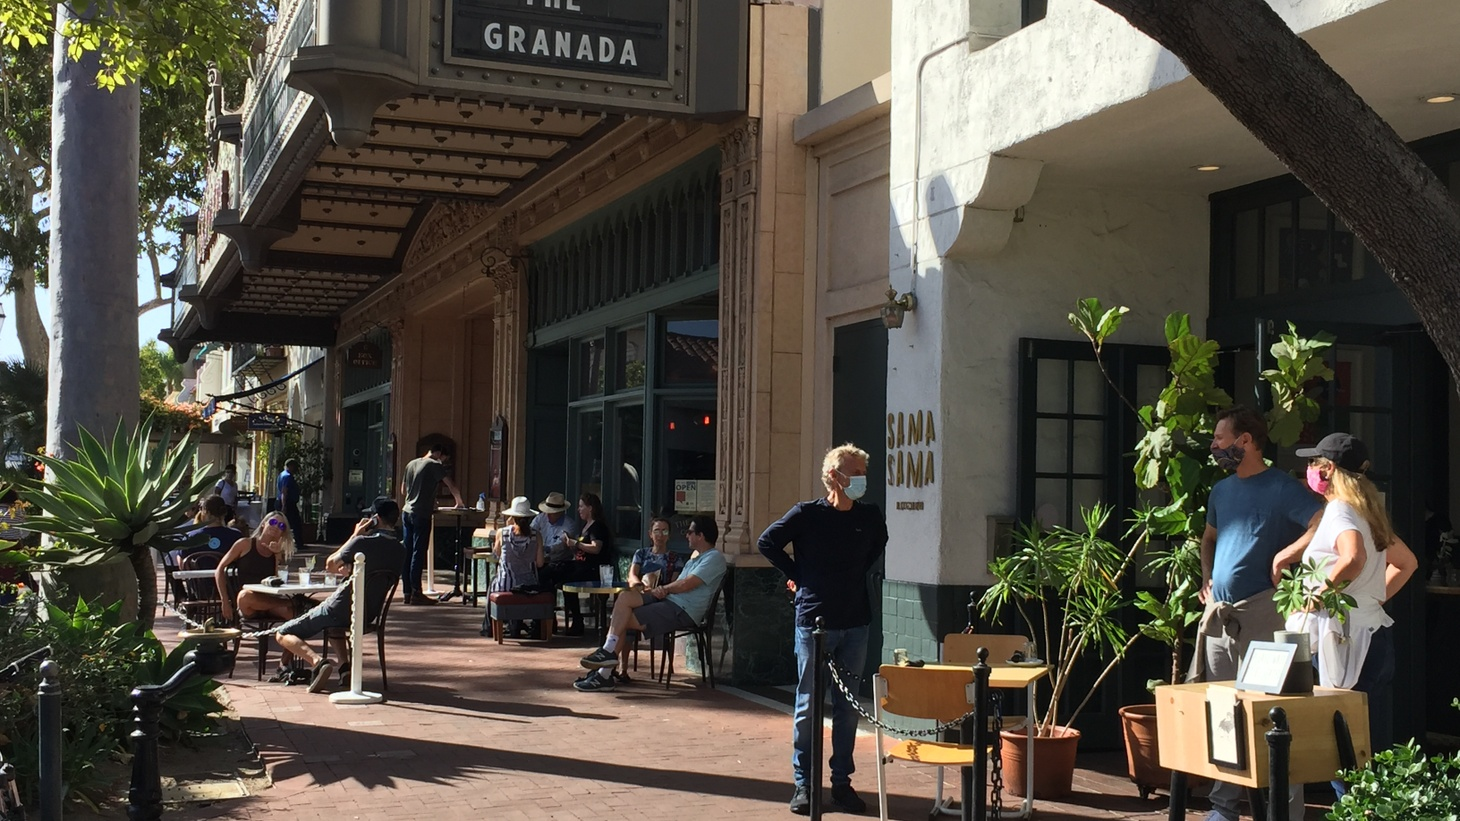 Sidewalk dining in Santa Barbara is offering restaurants a way to serve guests in a safer environment than indoors. It also provides them an economic lifeline after more than two months of limited service.